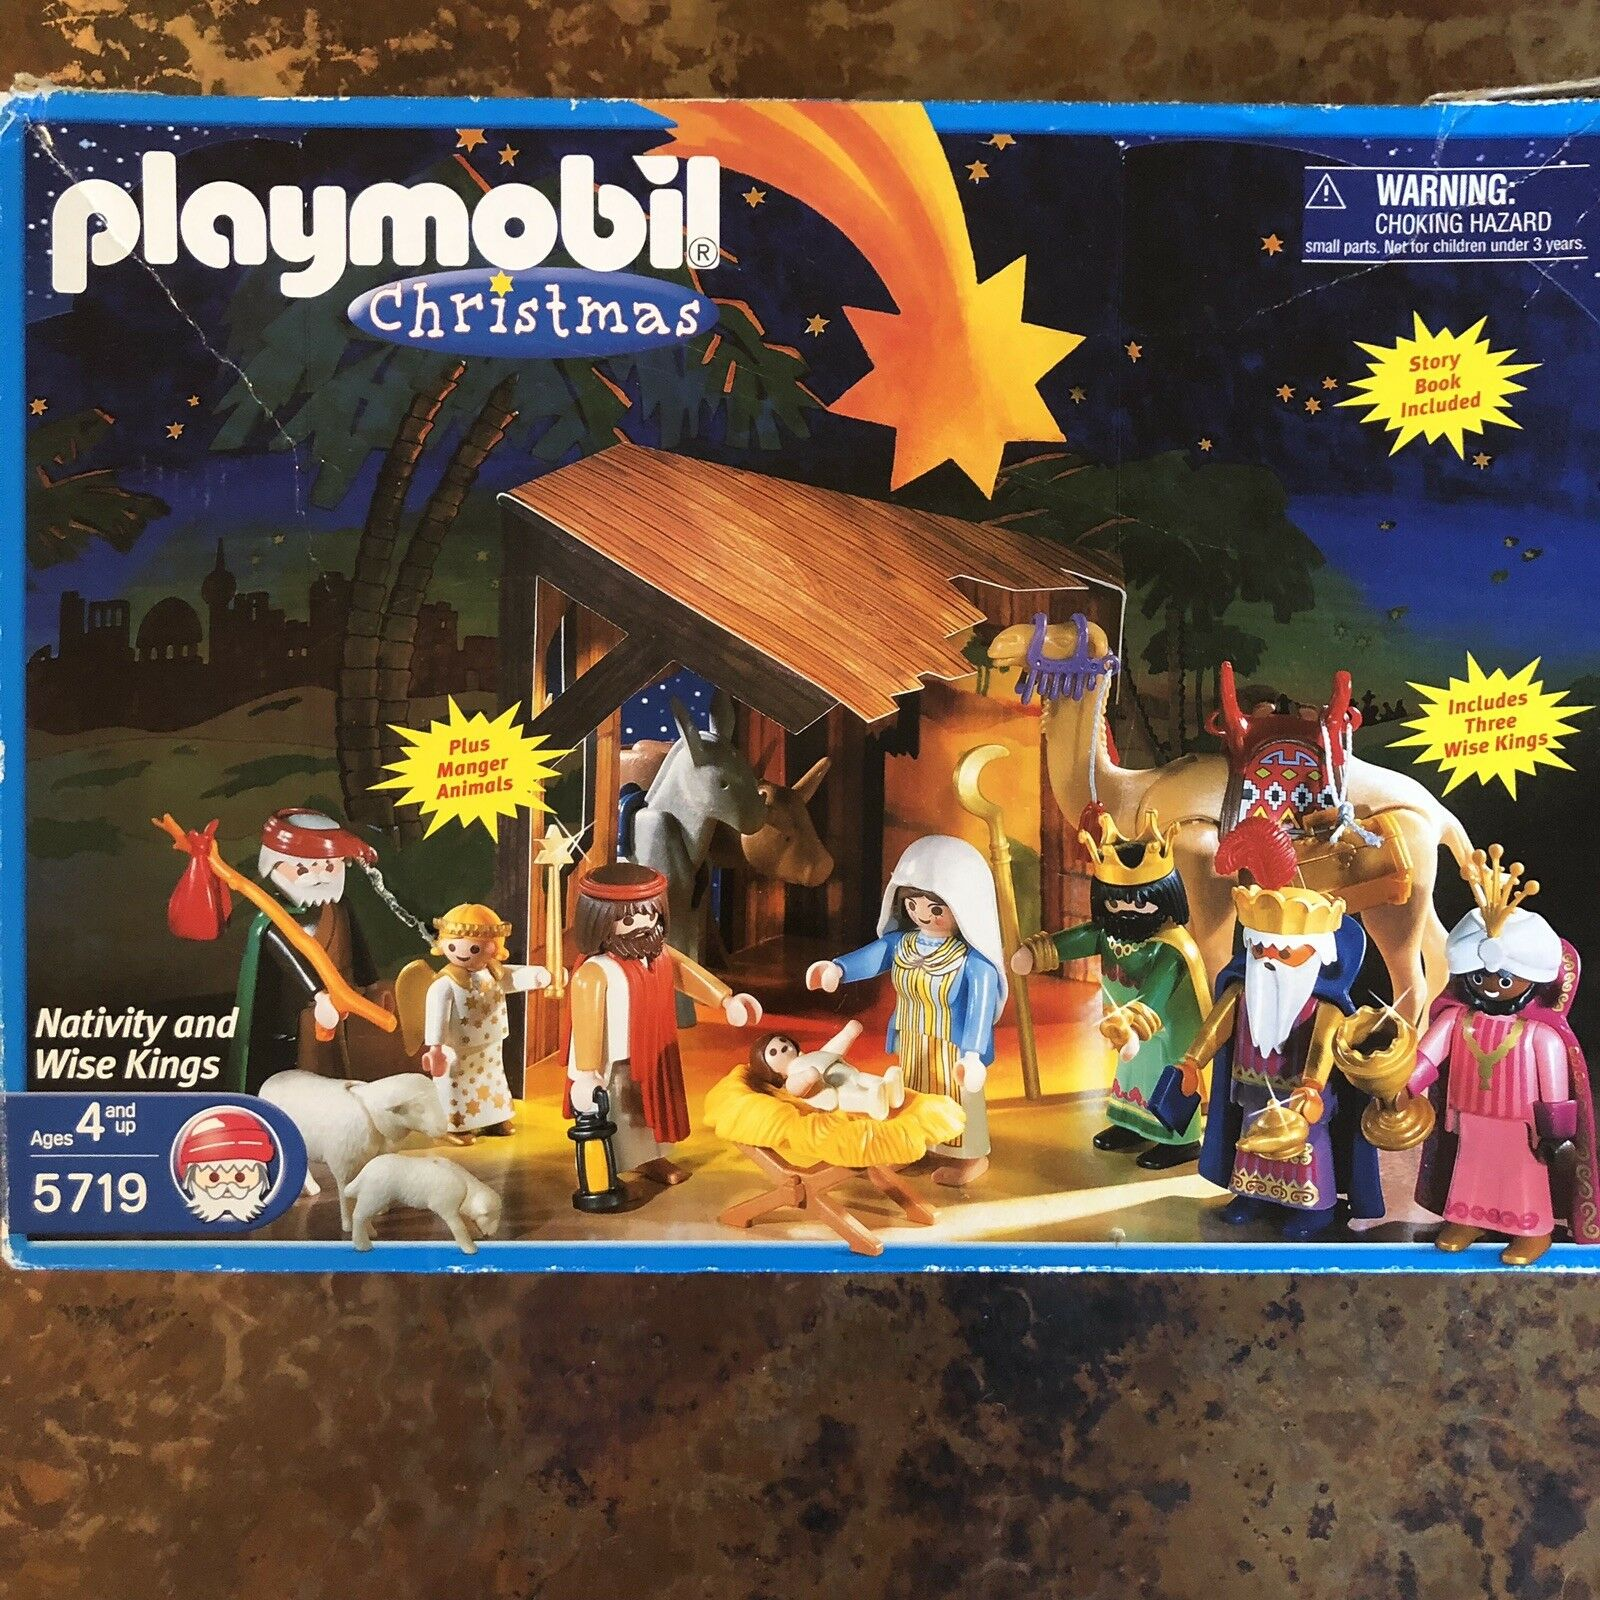 2002 PLAYMOBIL CHRISTMAS NATIVITY AND WISE MEN KINGS SET WITH BOX